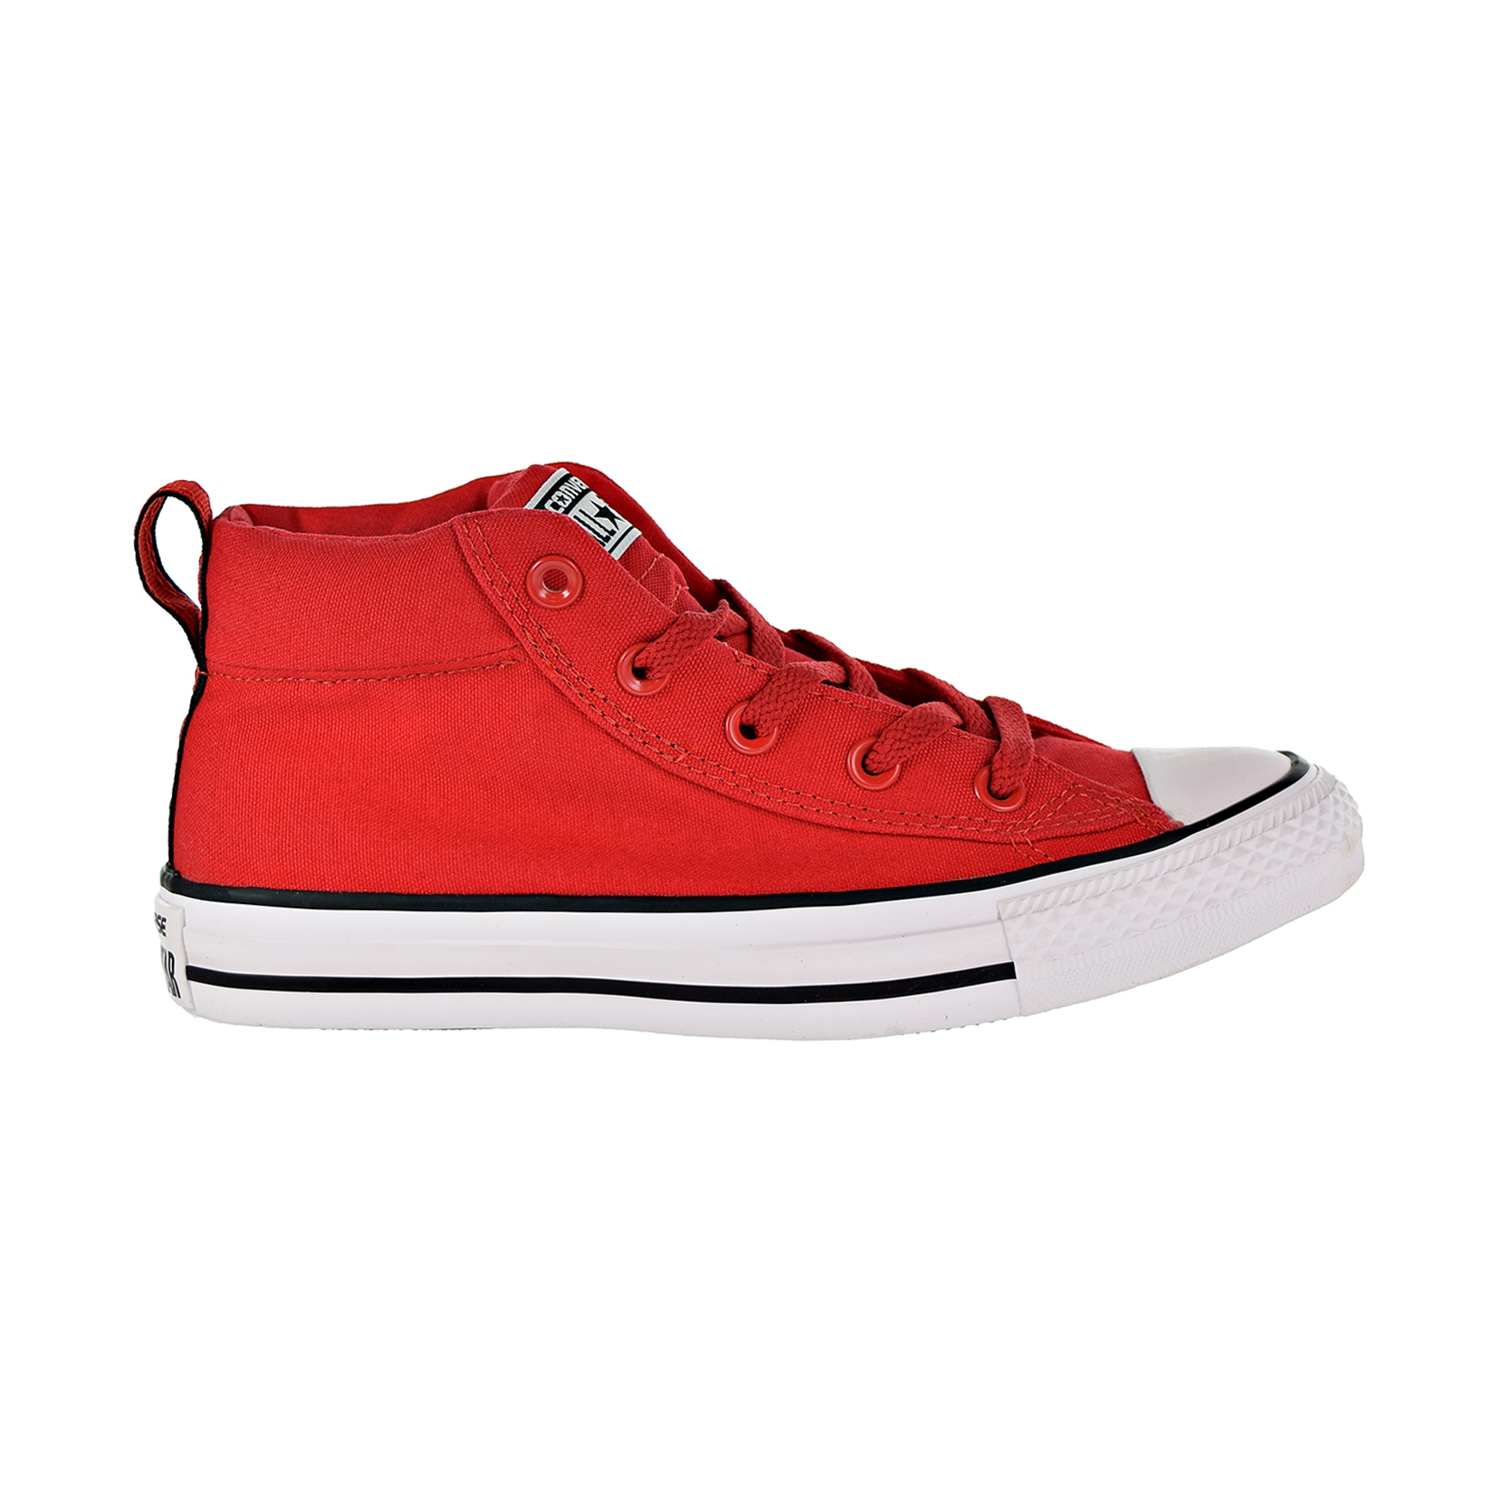 16c83ccdb36b Details about Converse Chuck Taylor All Star Street Mid Men s Shoes Casino  Black White 157540F